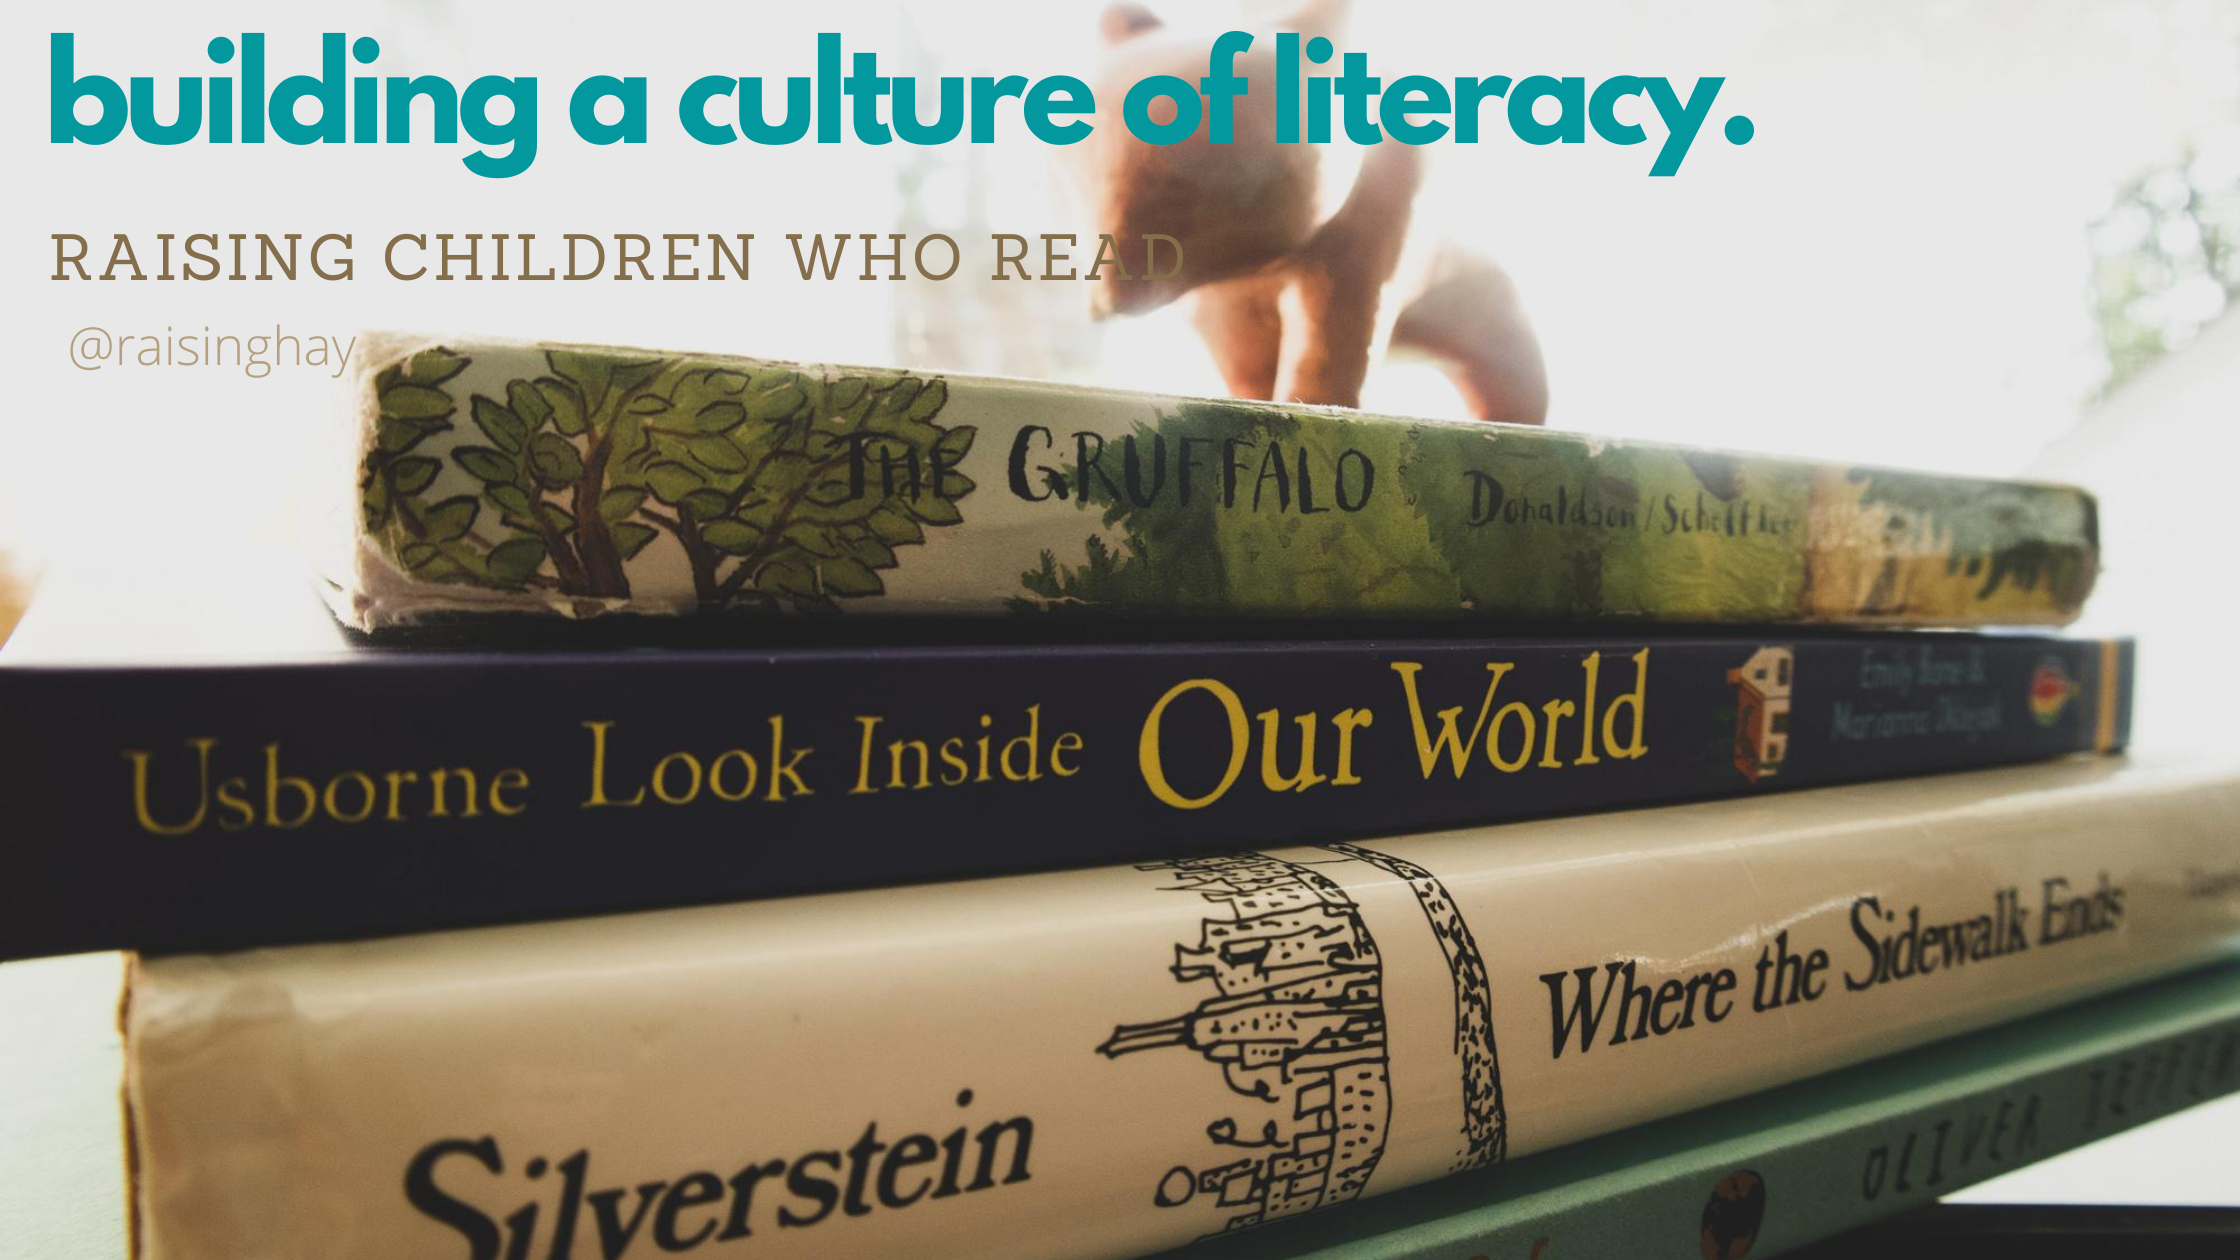 Building a Culture of Literacy